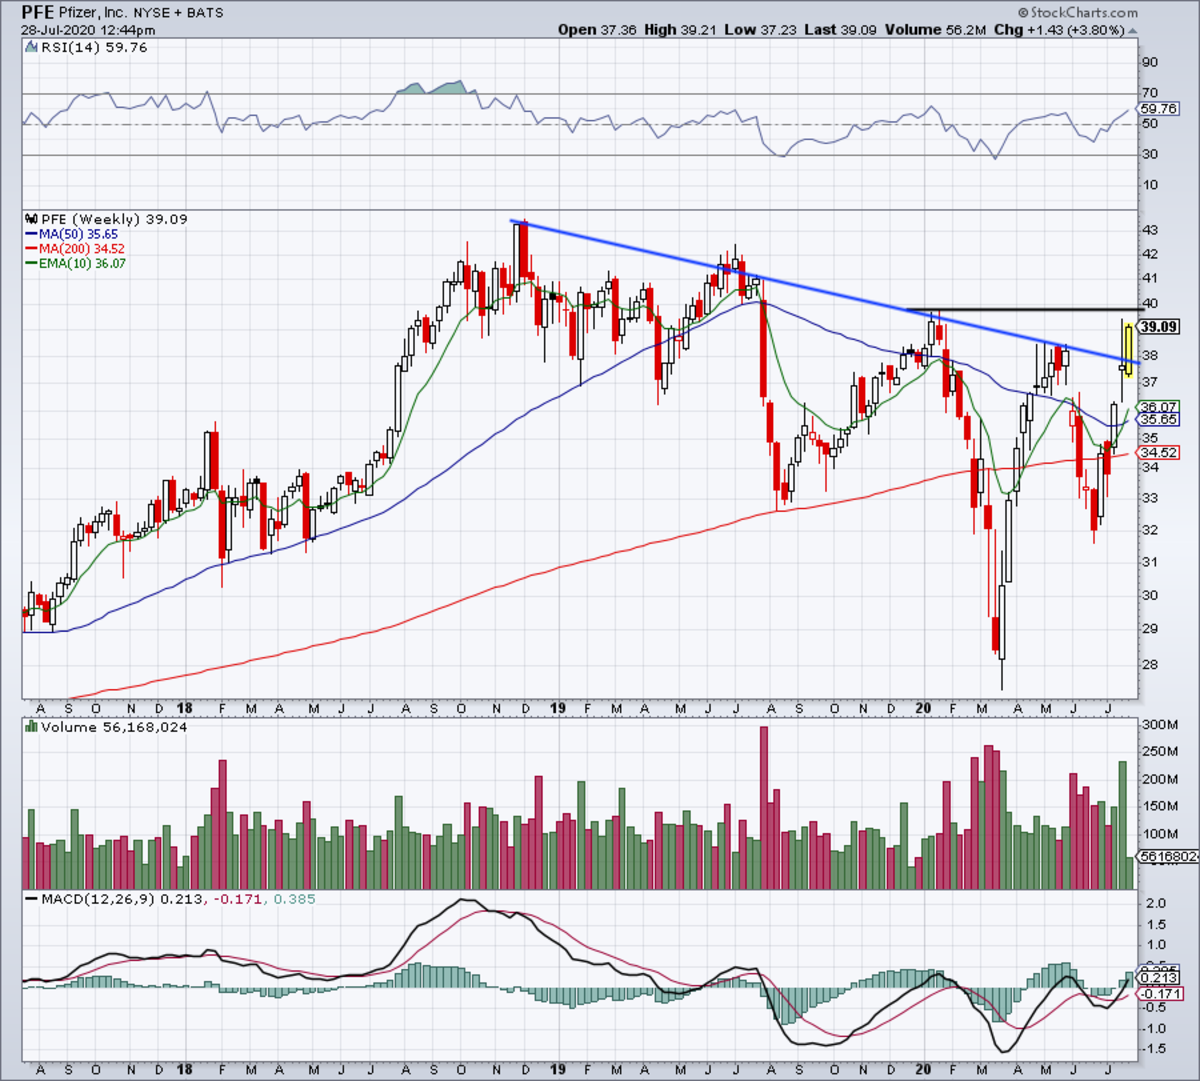 Weekly chart of Pfizer stock.